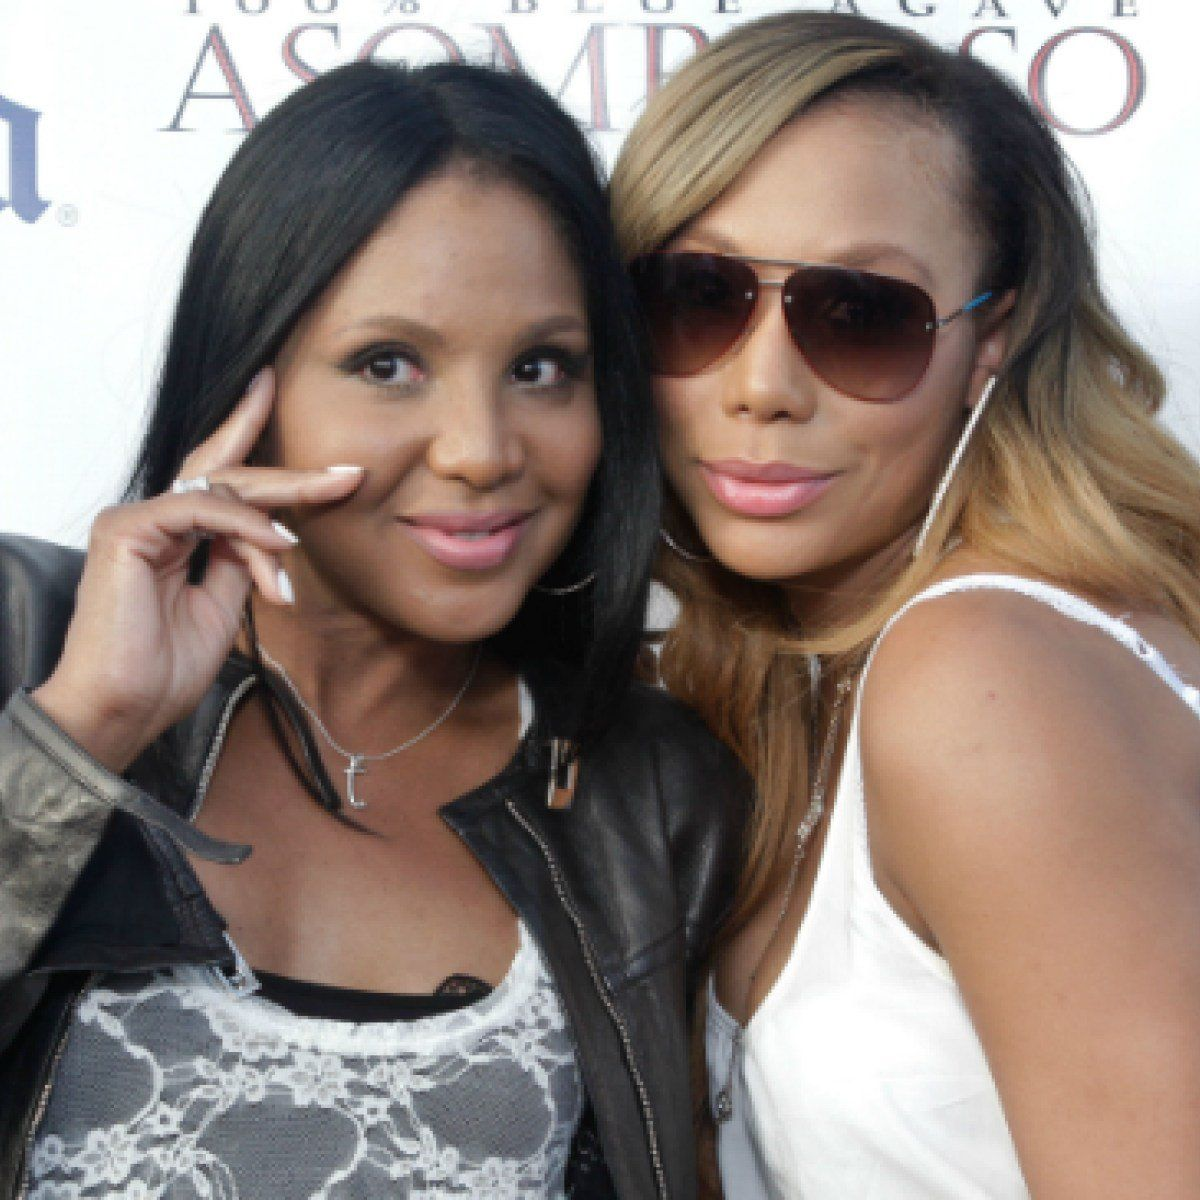 Tamar Braxton's Fans Warn The Singer That Her Sister Is Out To Get Her After Doing Babyface's Toni Braxton Challenge